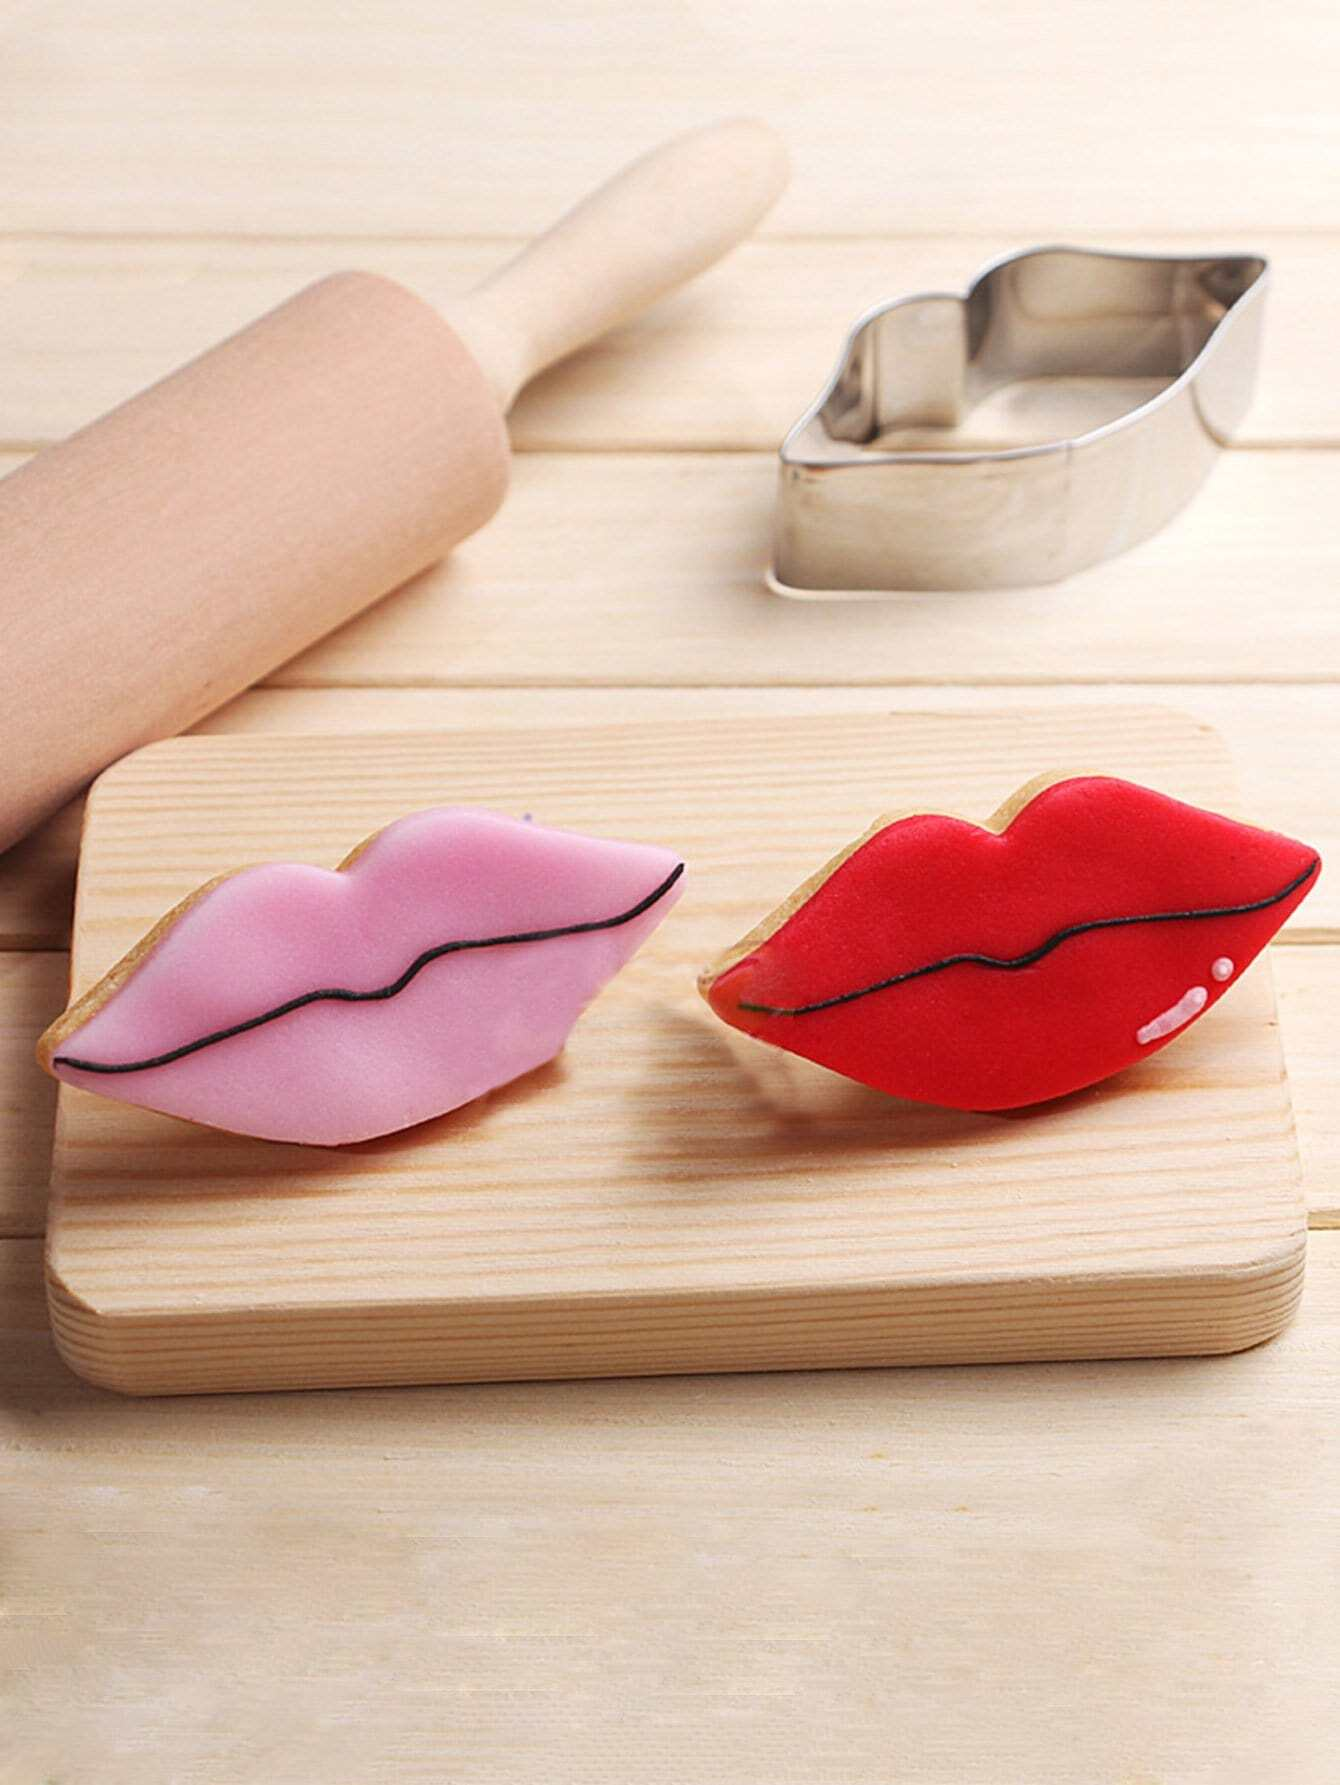 Stainless Steel Cookie Cutter Lip Mold 1pc household product plastic dustbin mold makers